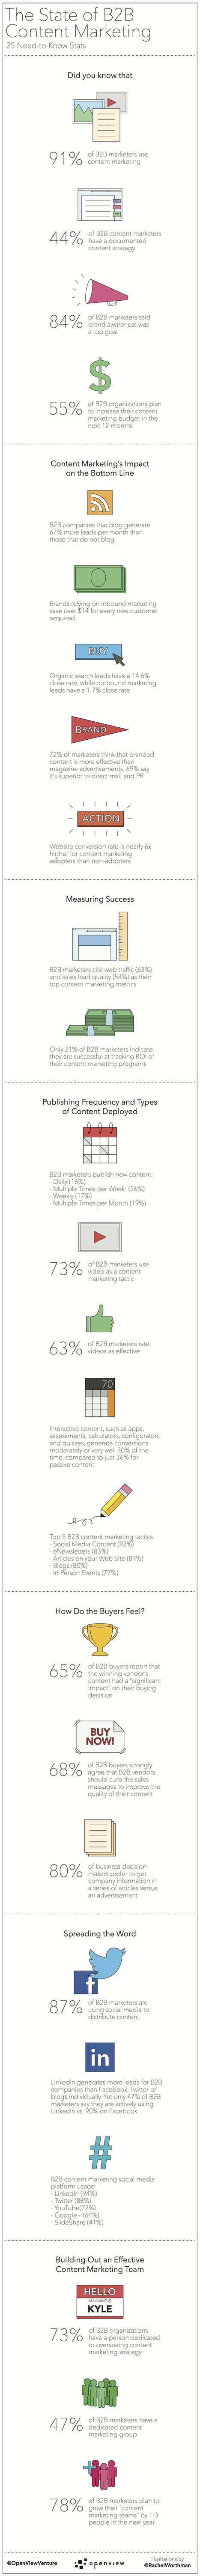 25 Key B2B Content Marketing Stats [Infographic] | Content Creation, Curation, Management | Scoop.it